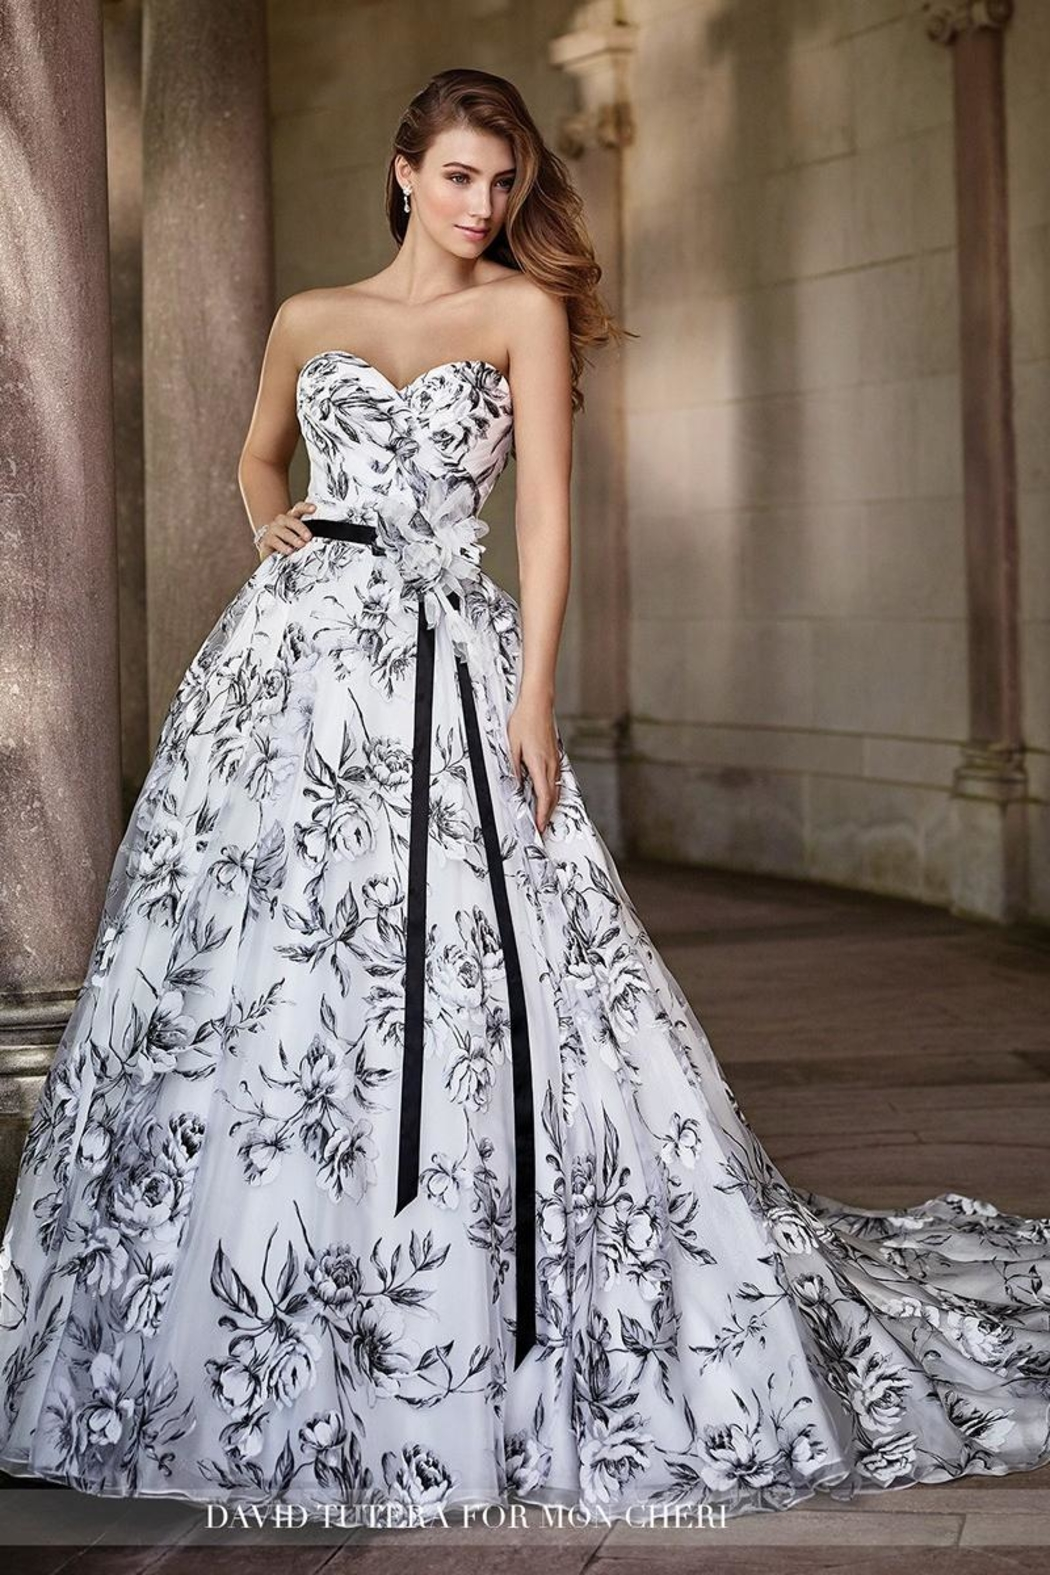 David Tutera for Mon Cheri Floral Burnout Gown - Main Image